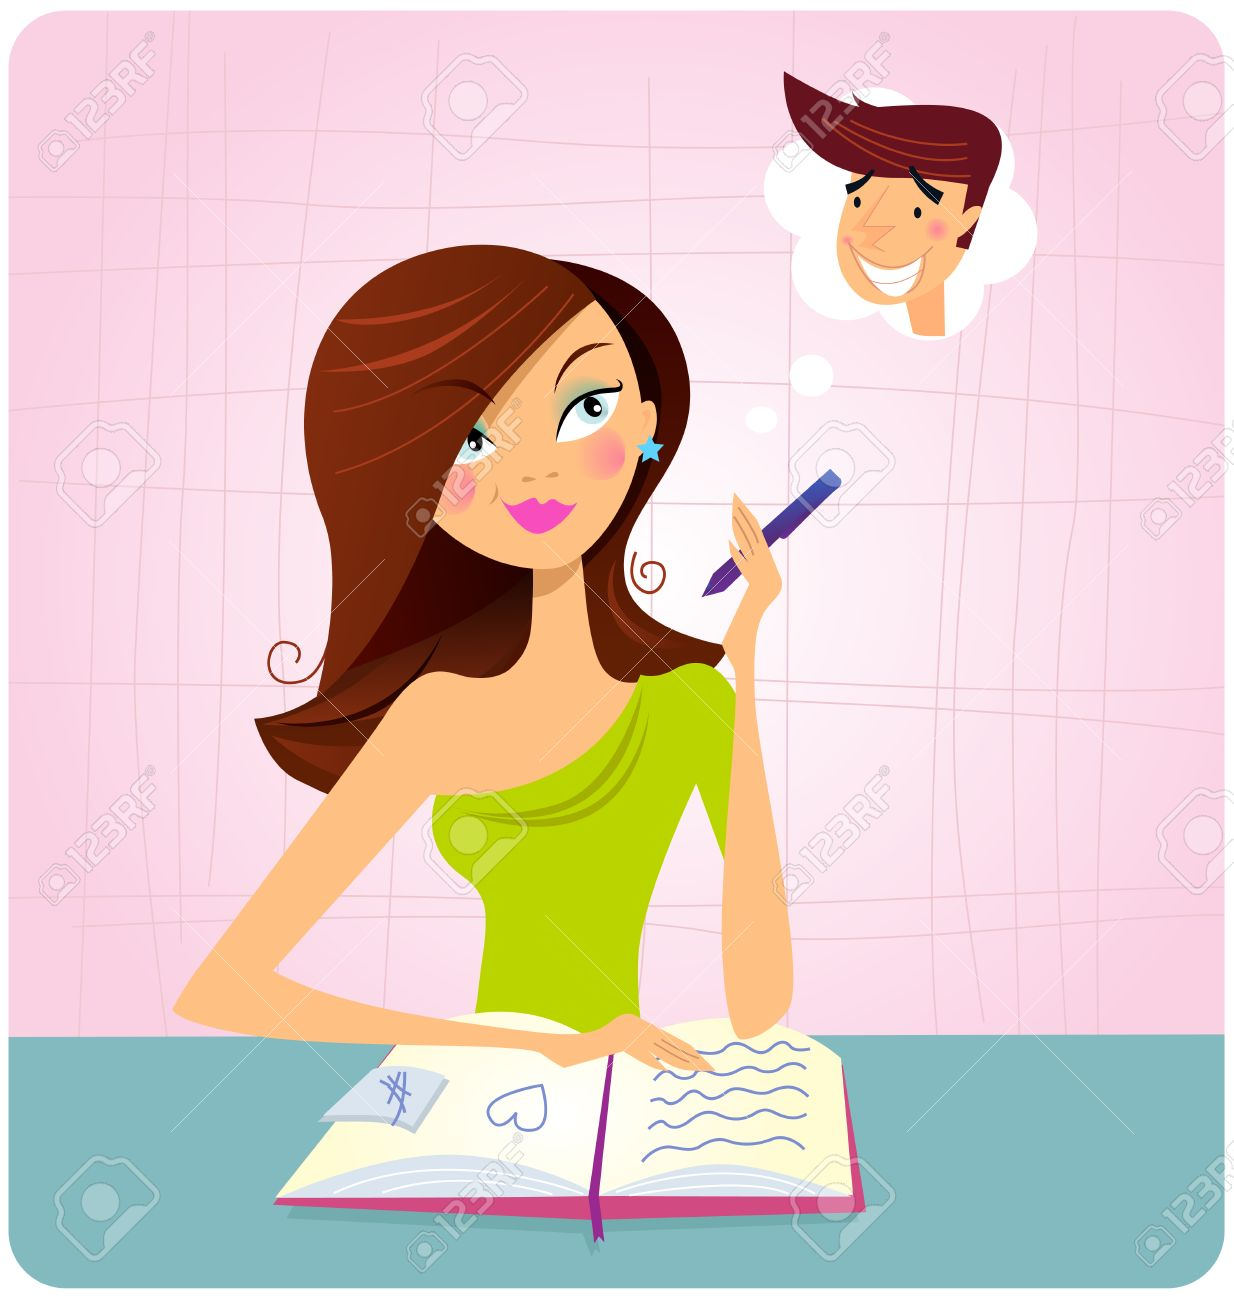 Young student girl is daydreaming while studying. This student girl is is doing homework or reading book and dreaming about this sexy boy. Illustration. Stock Vector - 7699542